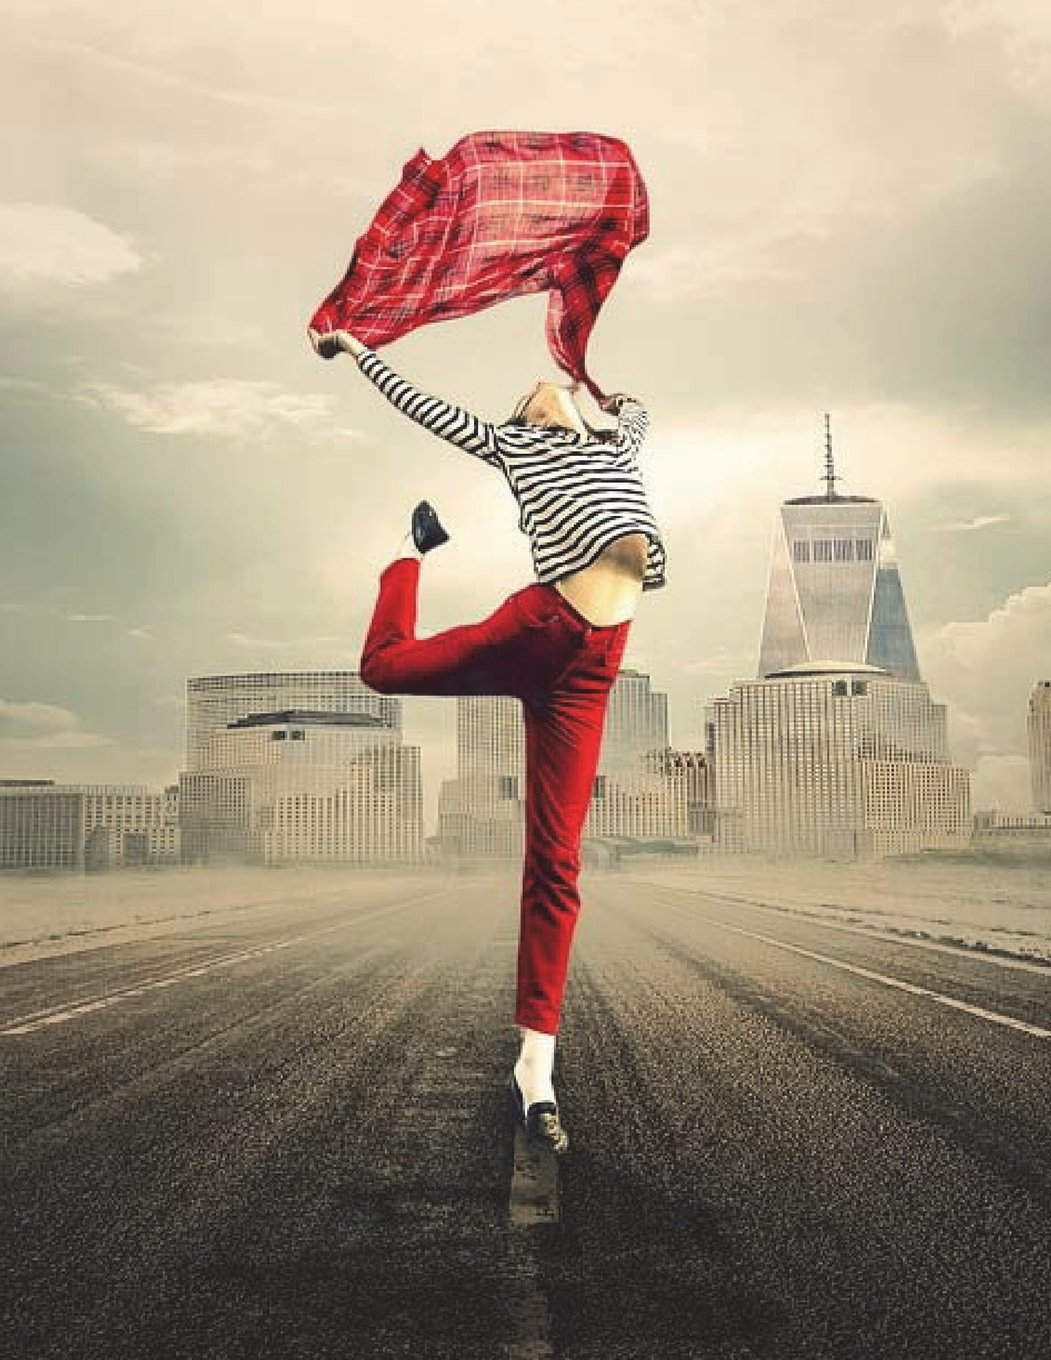 Dance Girl Dancing Woman Joy Life Contemporary Freedom Rhythm Break Free Happy Notebook Journal Diary Composition Book Large Size 150 Ruled Pages For School Office Or Home Softcover Great Gift Wild Pages